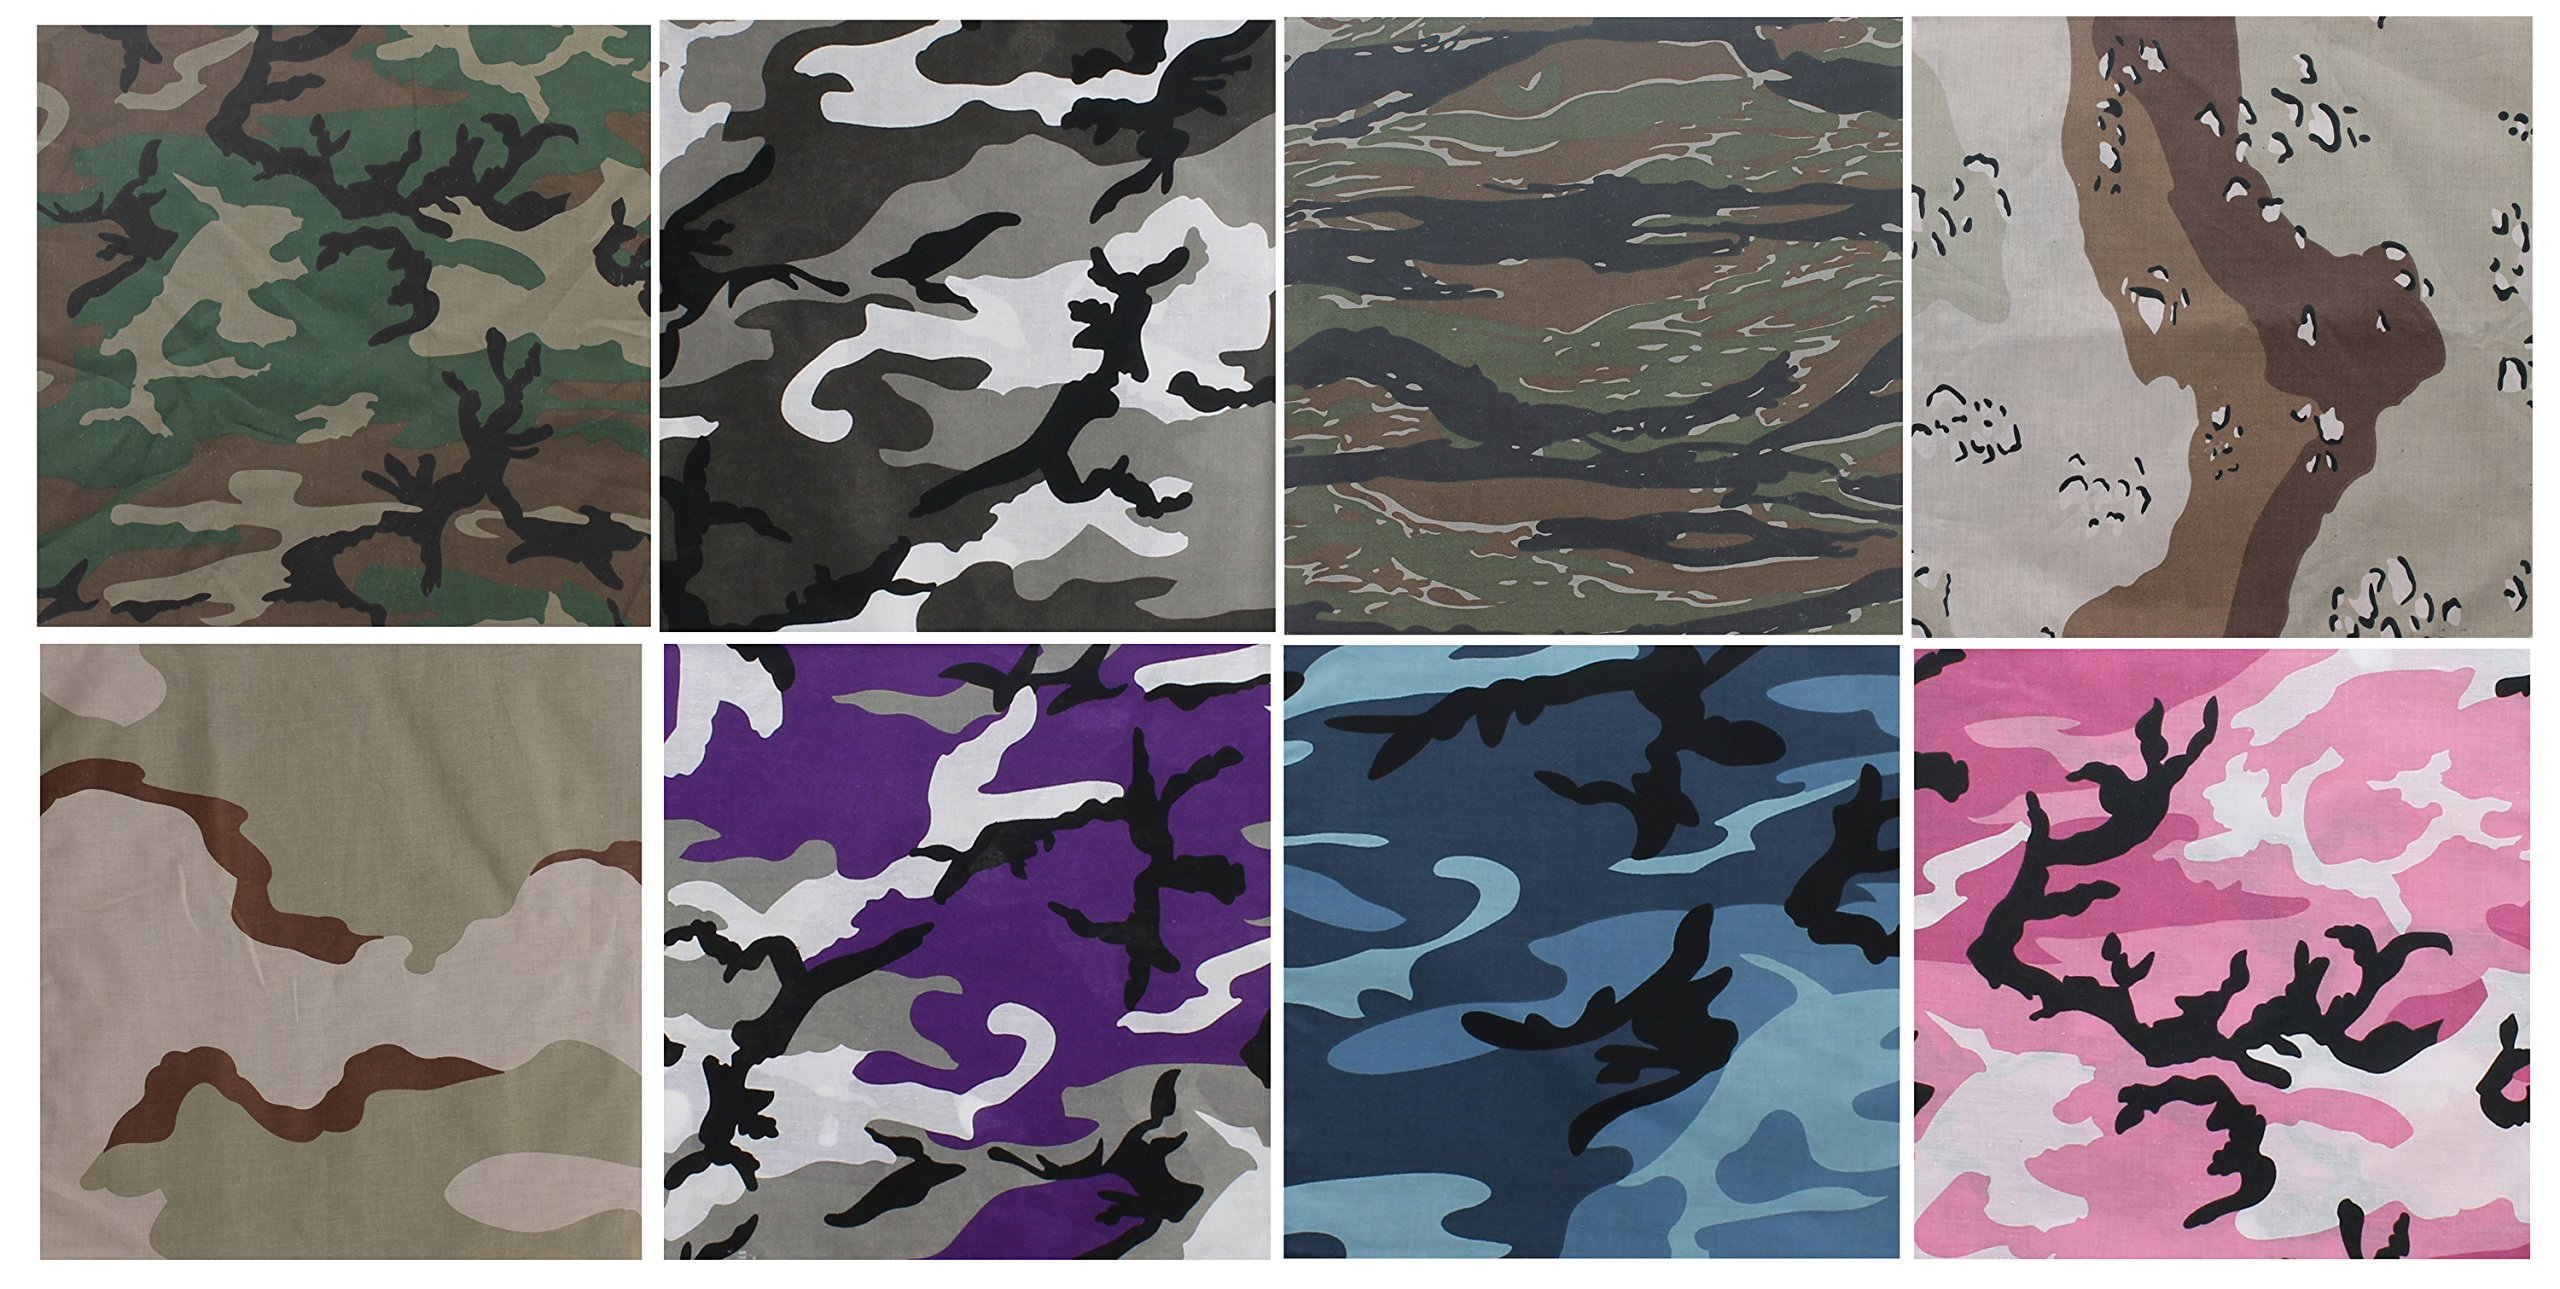 Army Universe 8 Pack - Jumbo Bandanas Camouflage Cotton Military Headwraps 27'' x 27'' by Army Universe